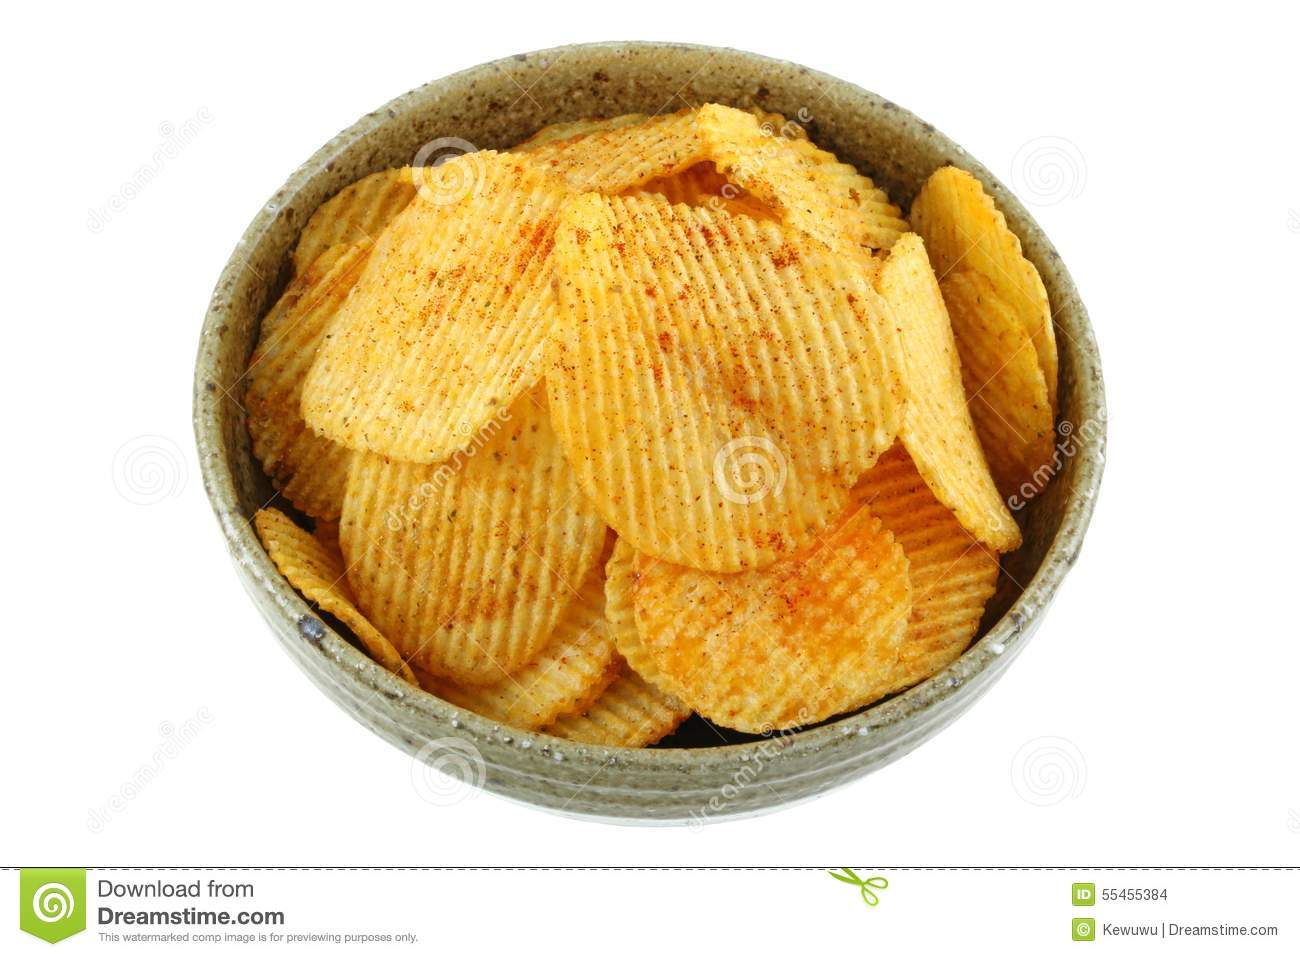 how to make fried potato chips